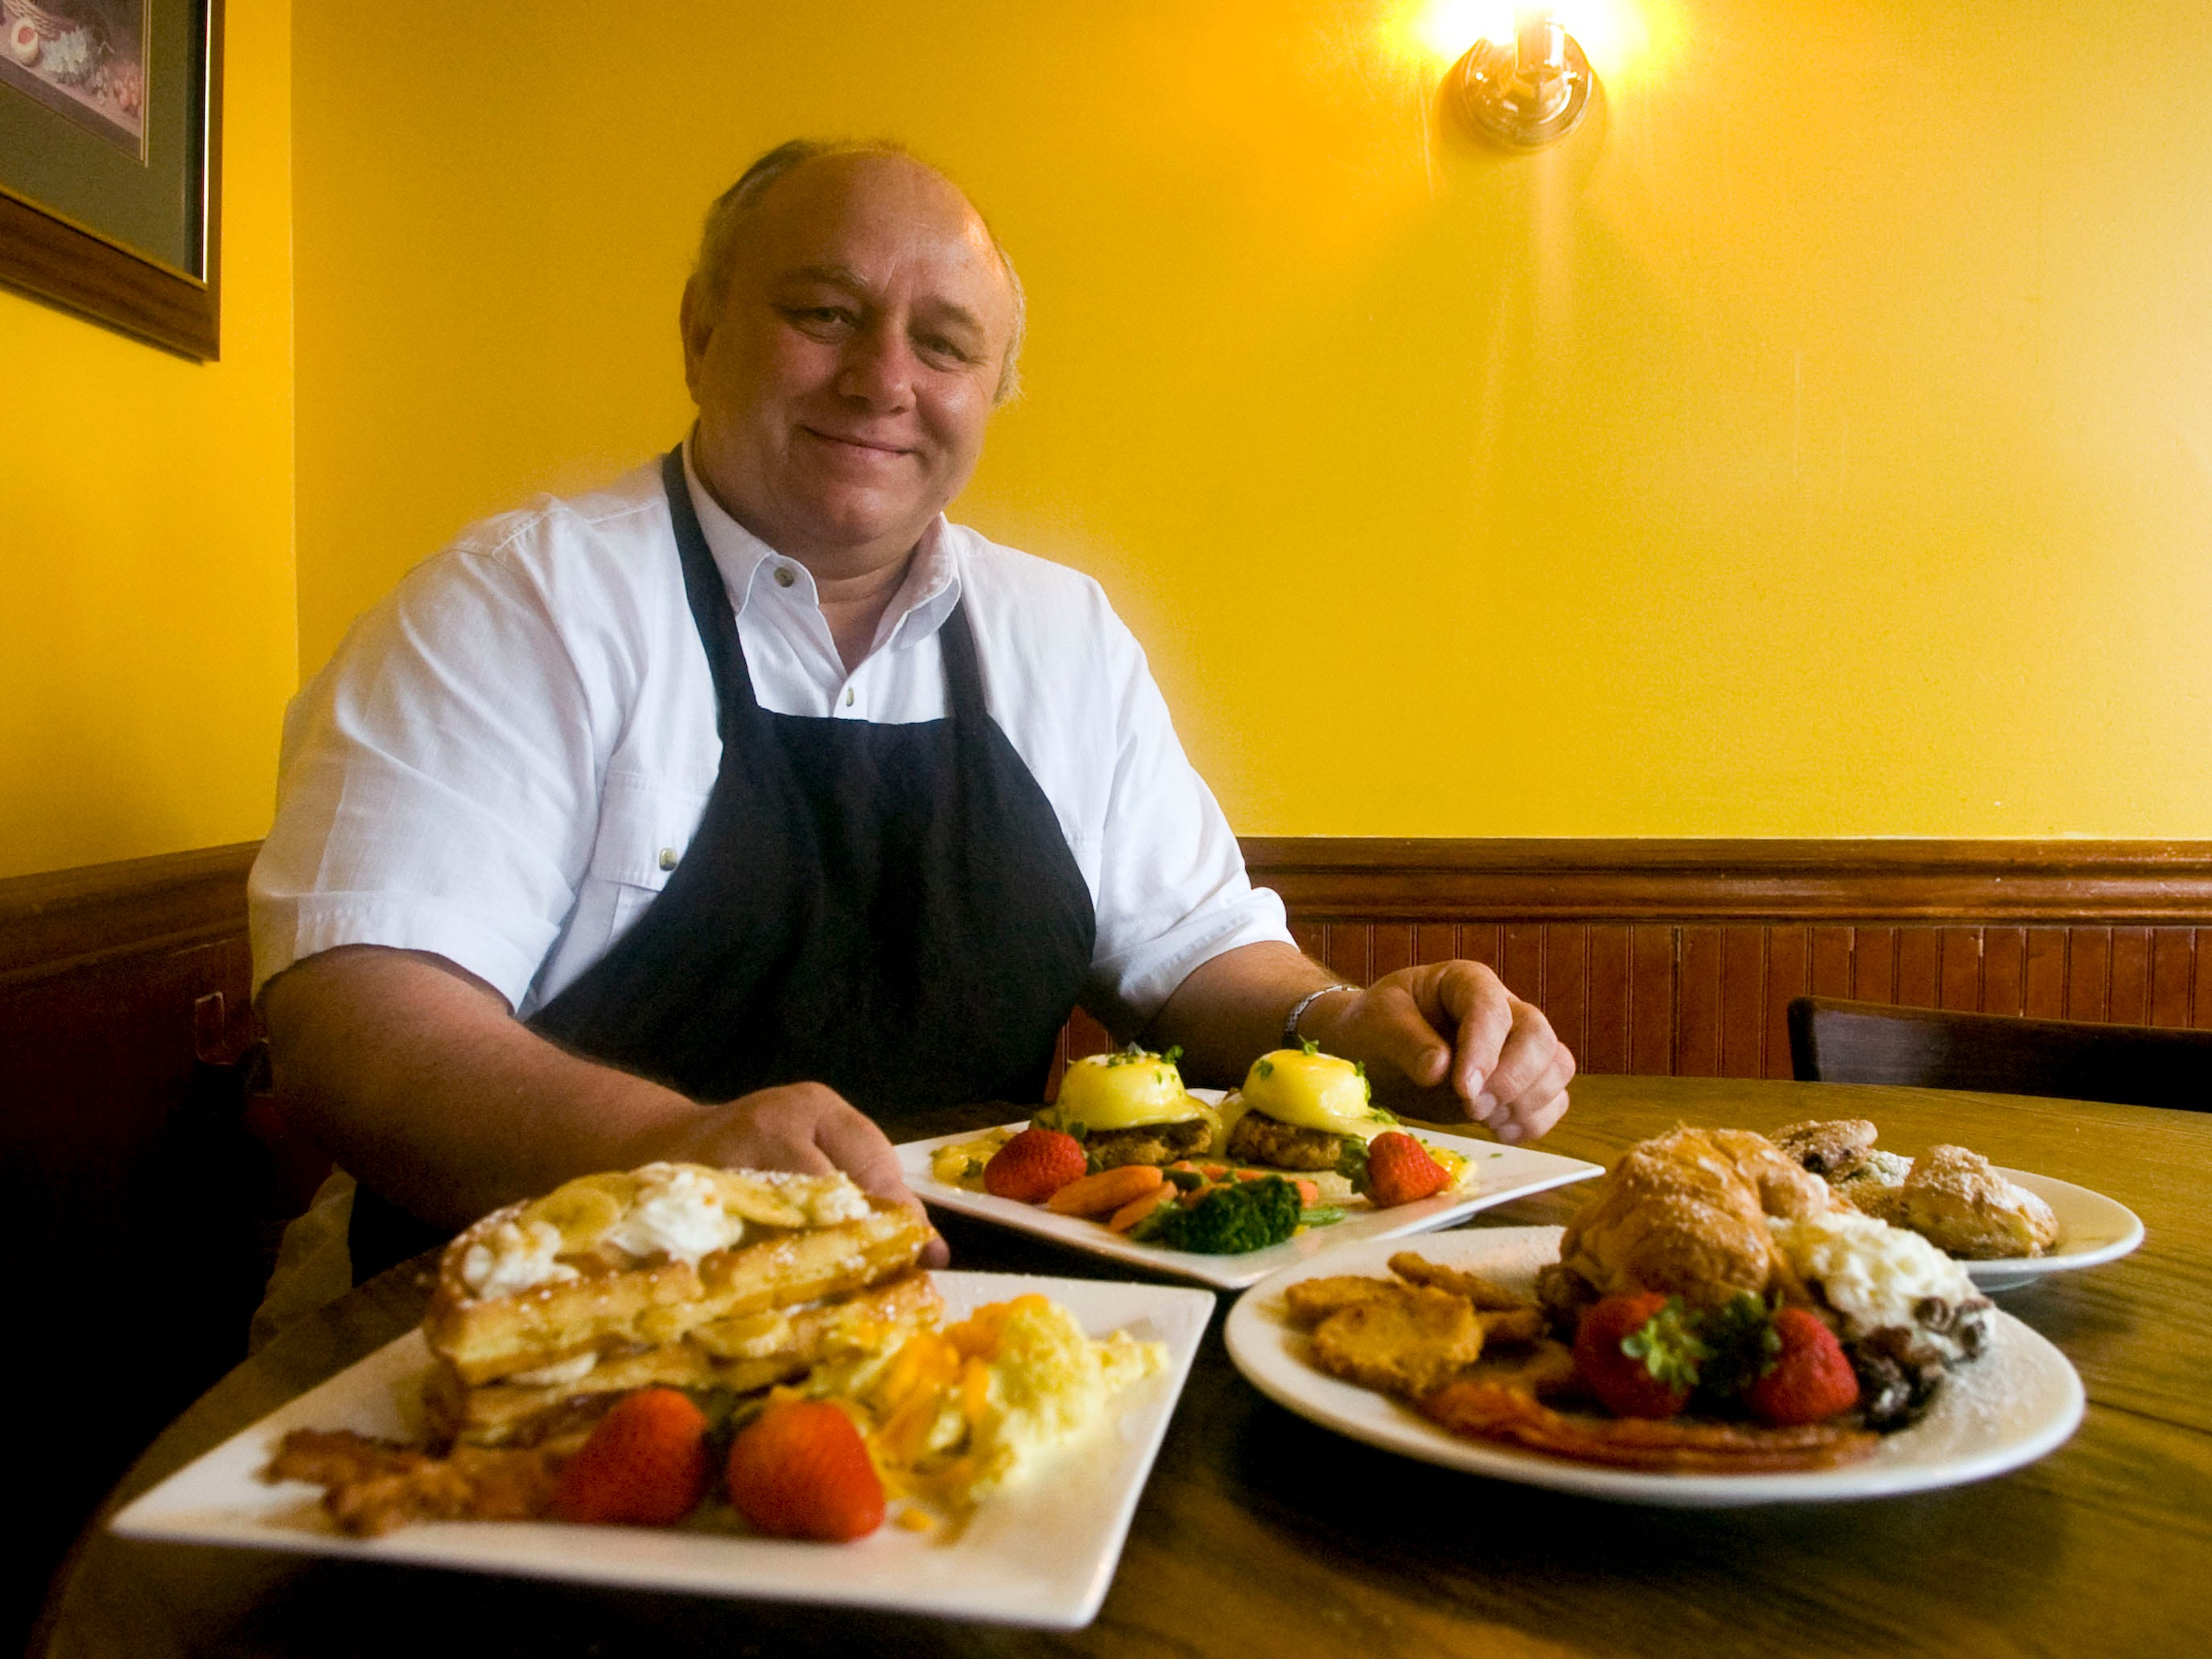 The Creamery Parke Grille at 114 Hotel Rd. was voted best Sunday brunch in the 2009 East Tennessee's Best Reader's Poll. Owner Jeff Patin is pictured on Sunday, Sept. 20, 2009  with a selection of the restaurant's brunch selection from left, banana Foster's waffle, egge benedict, and apple stuffed French toast croissant.